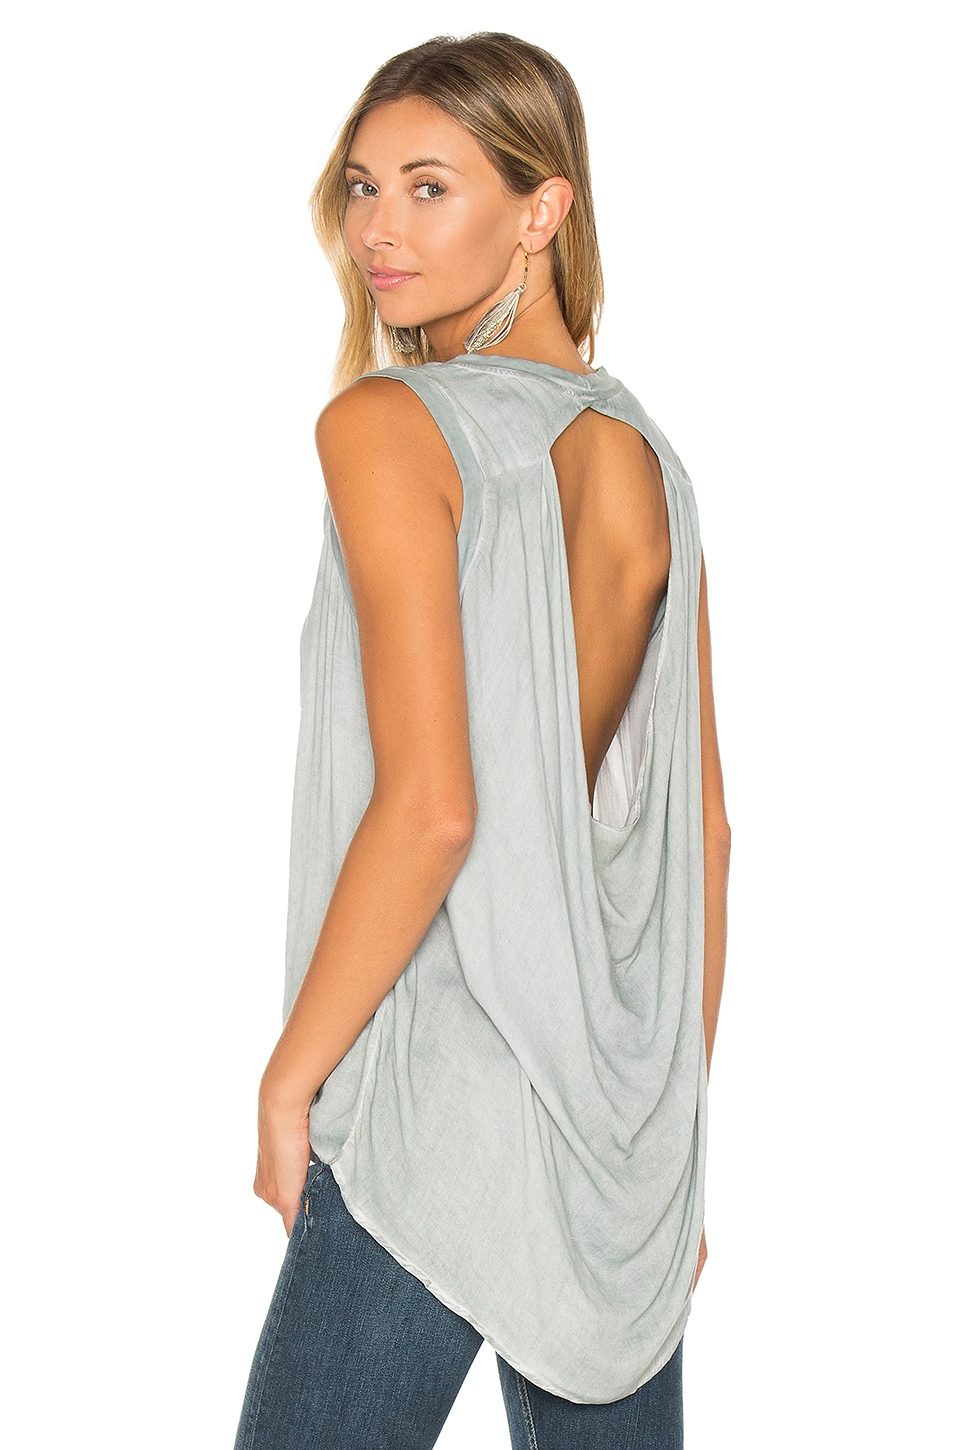 YFB CLOTHING Mash Tank in Dusty Blue